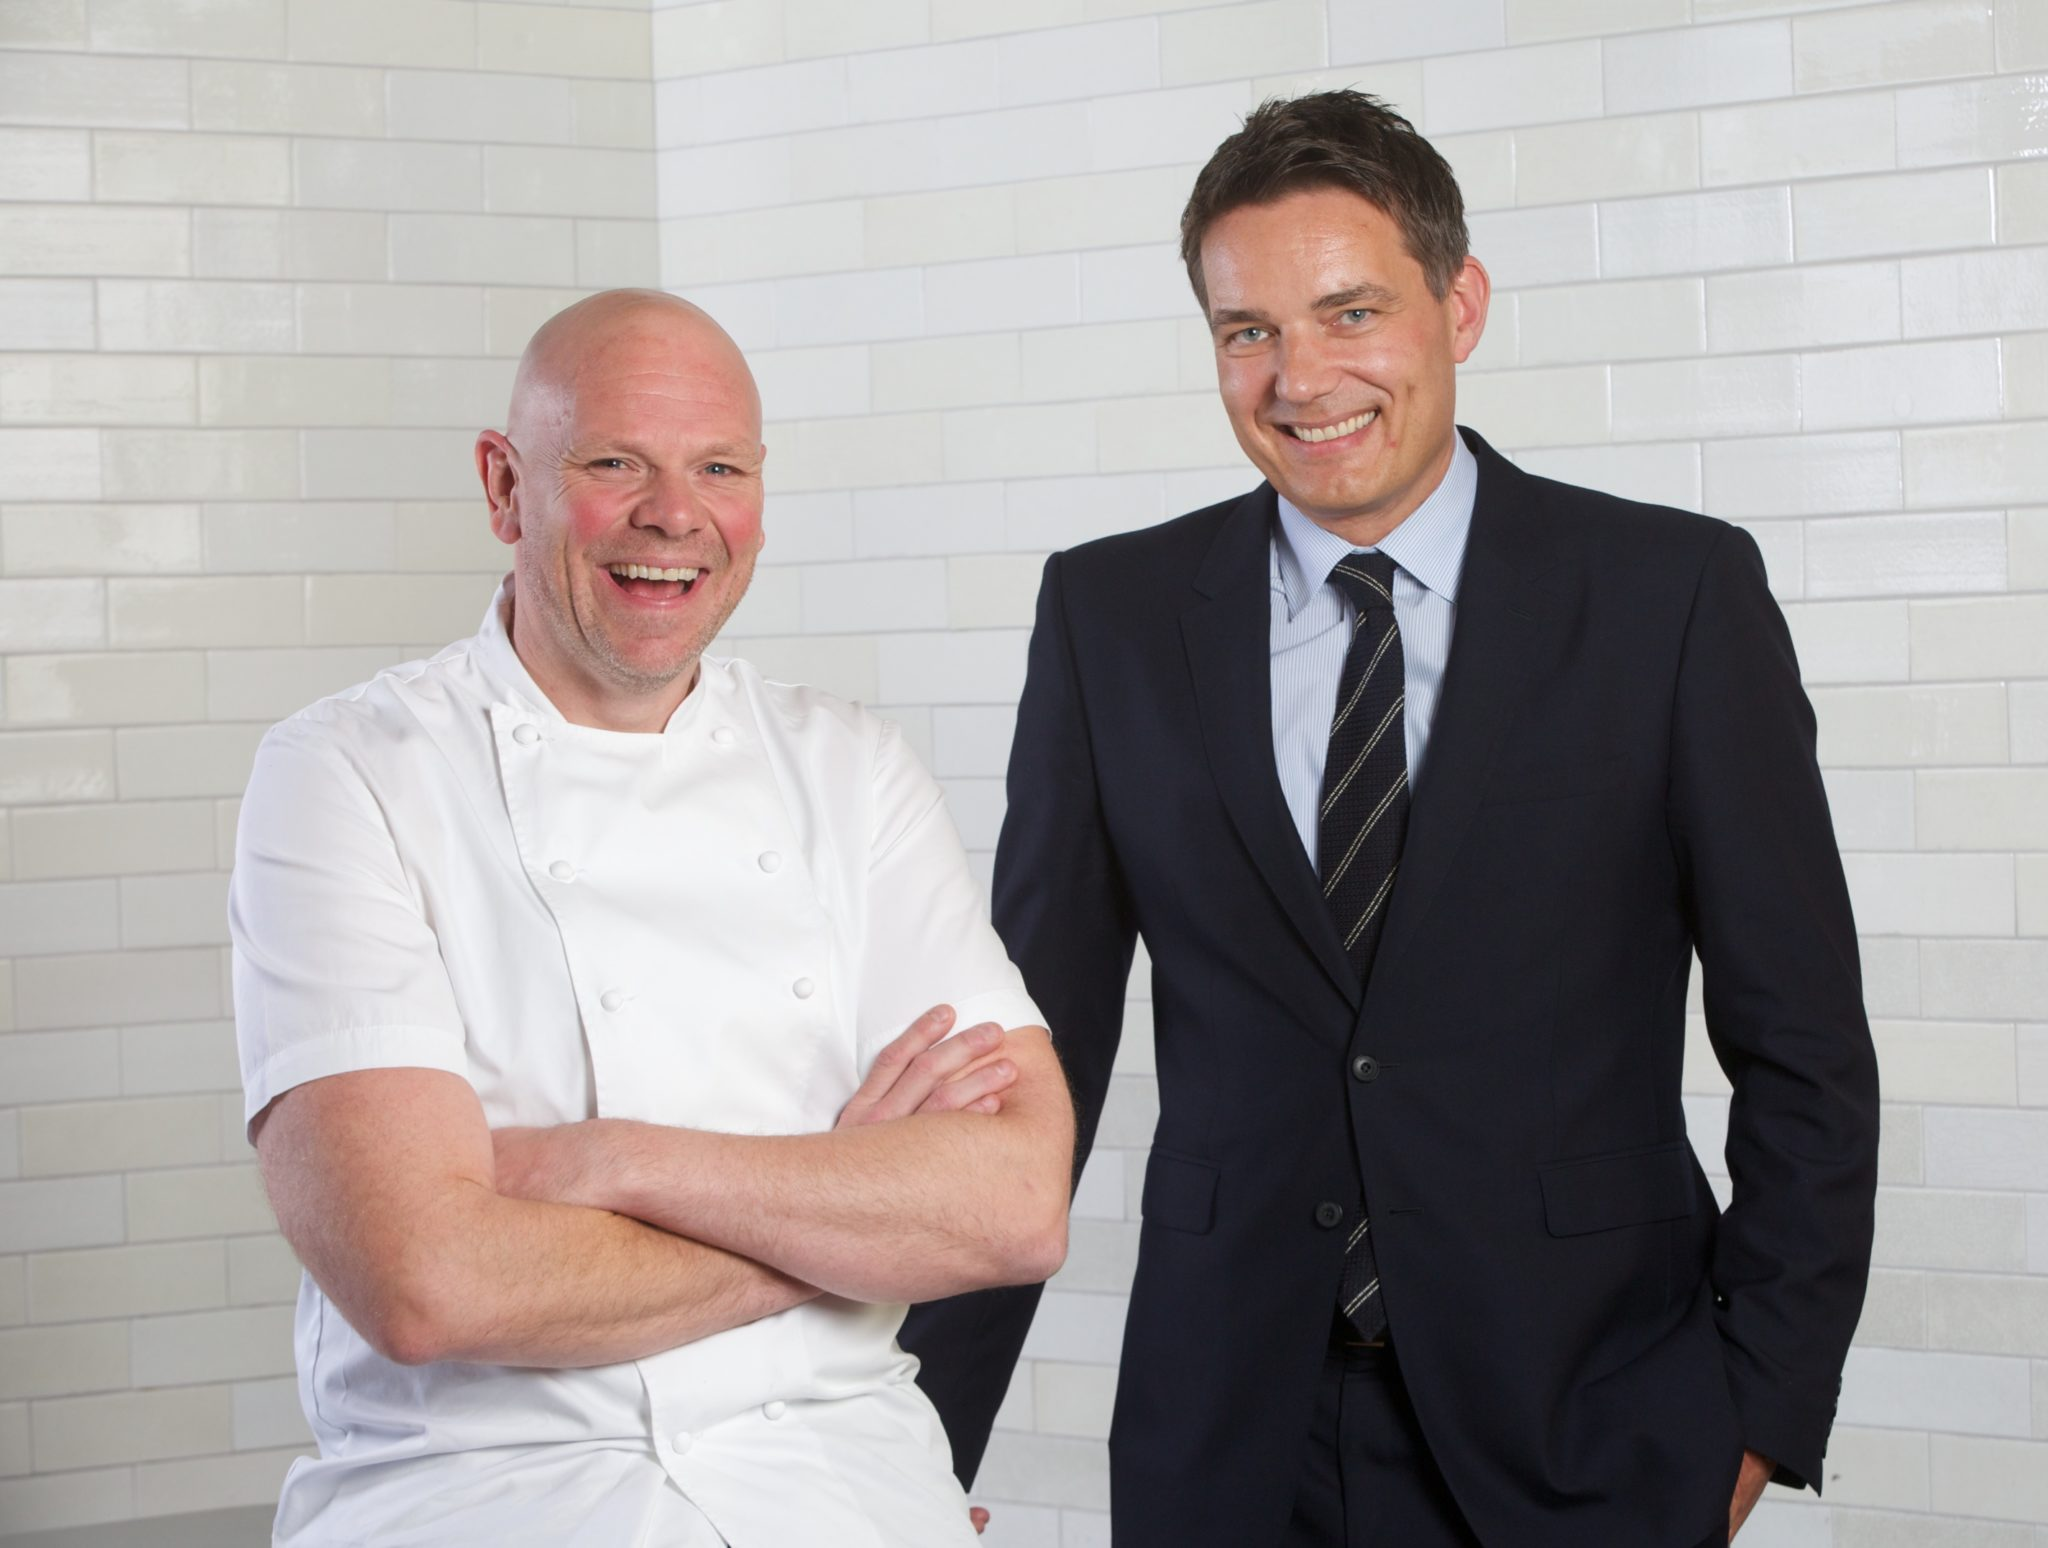 Tom Kerridge + Thomas Kochs